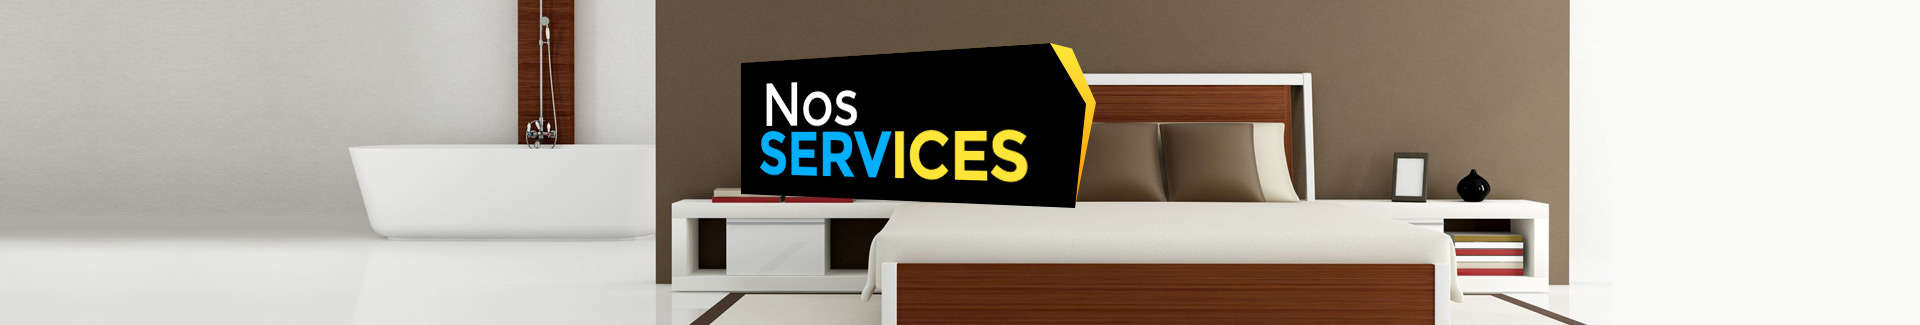 services-header-background-fr